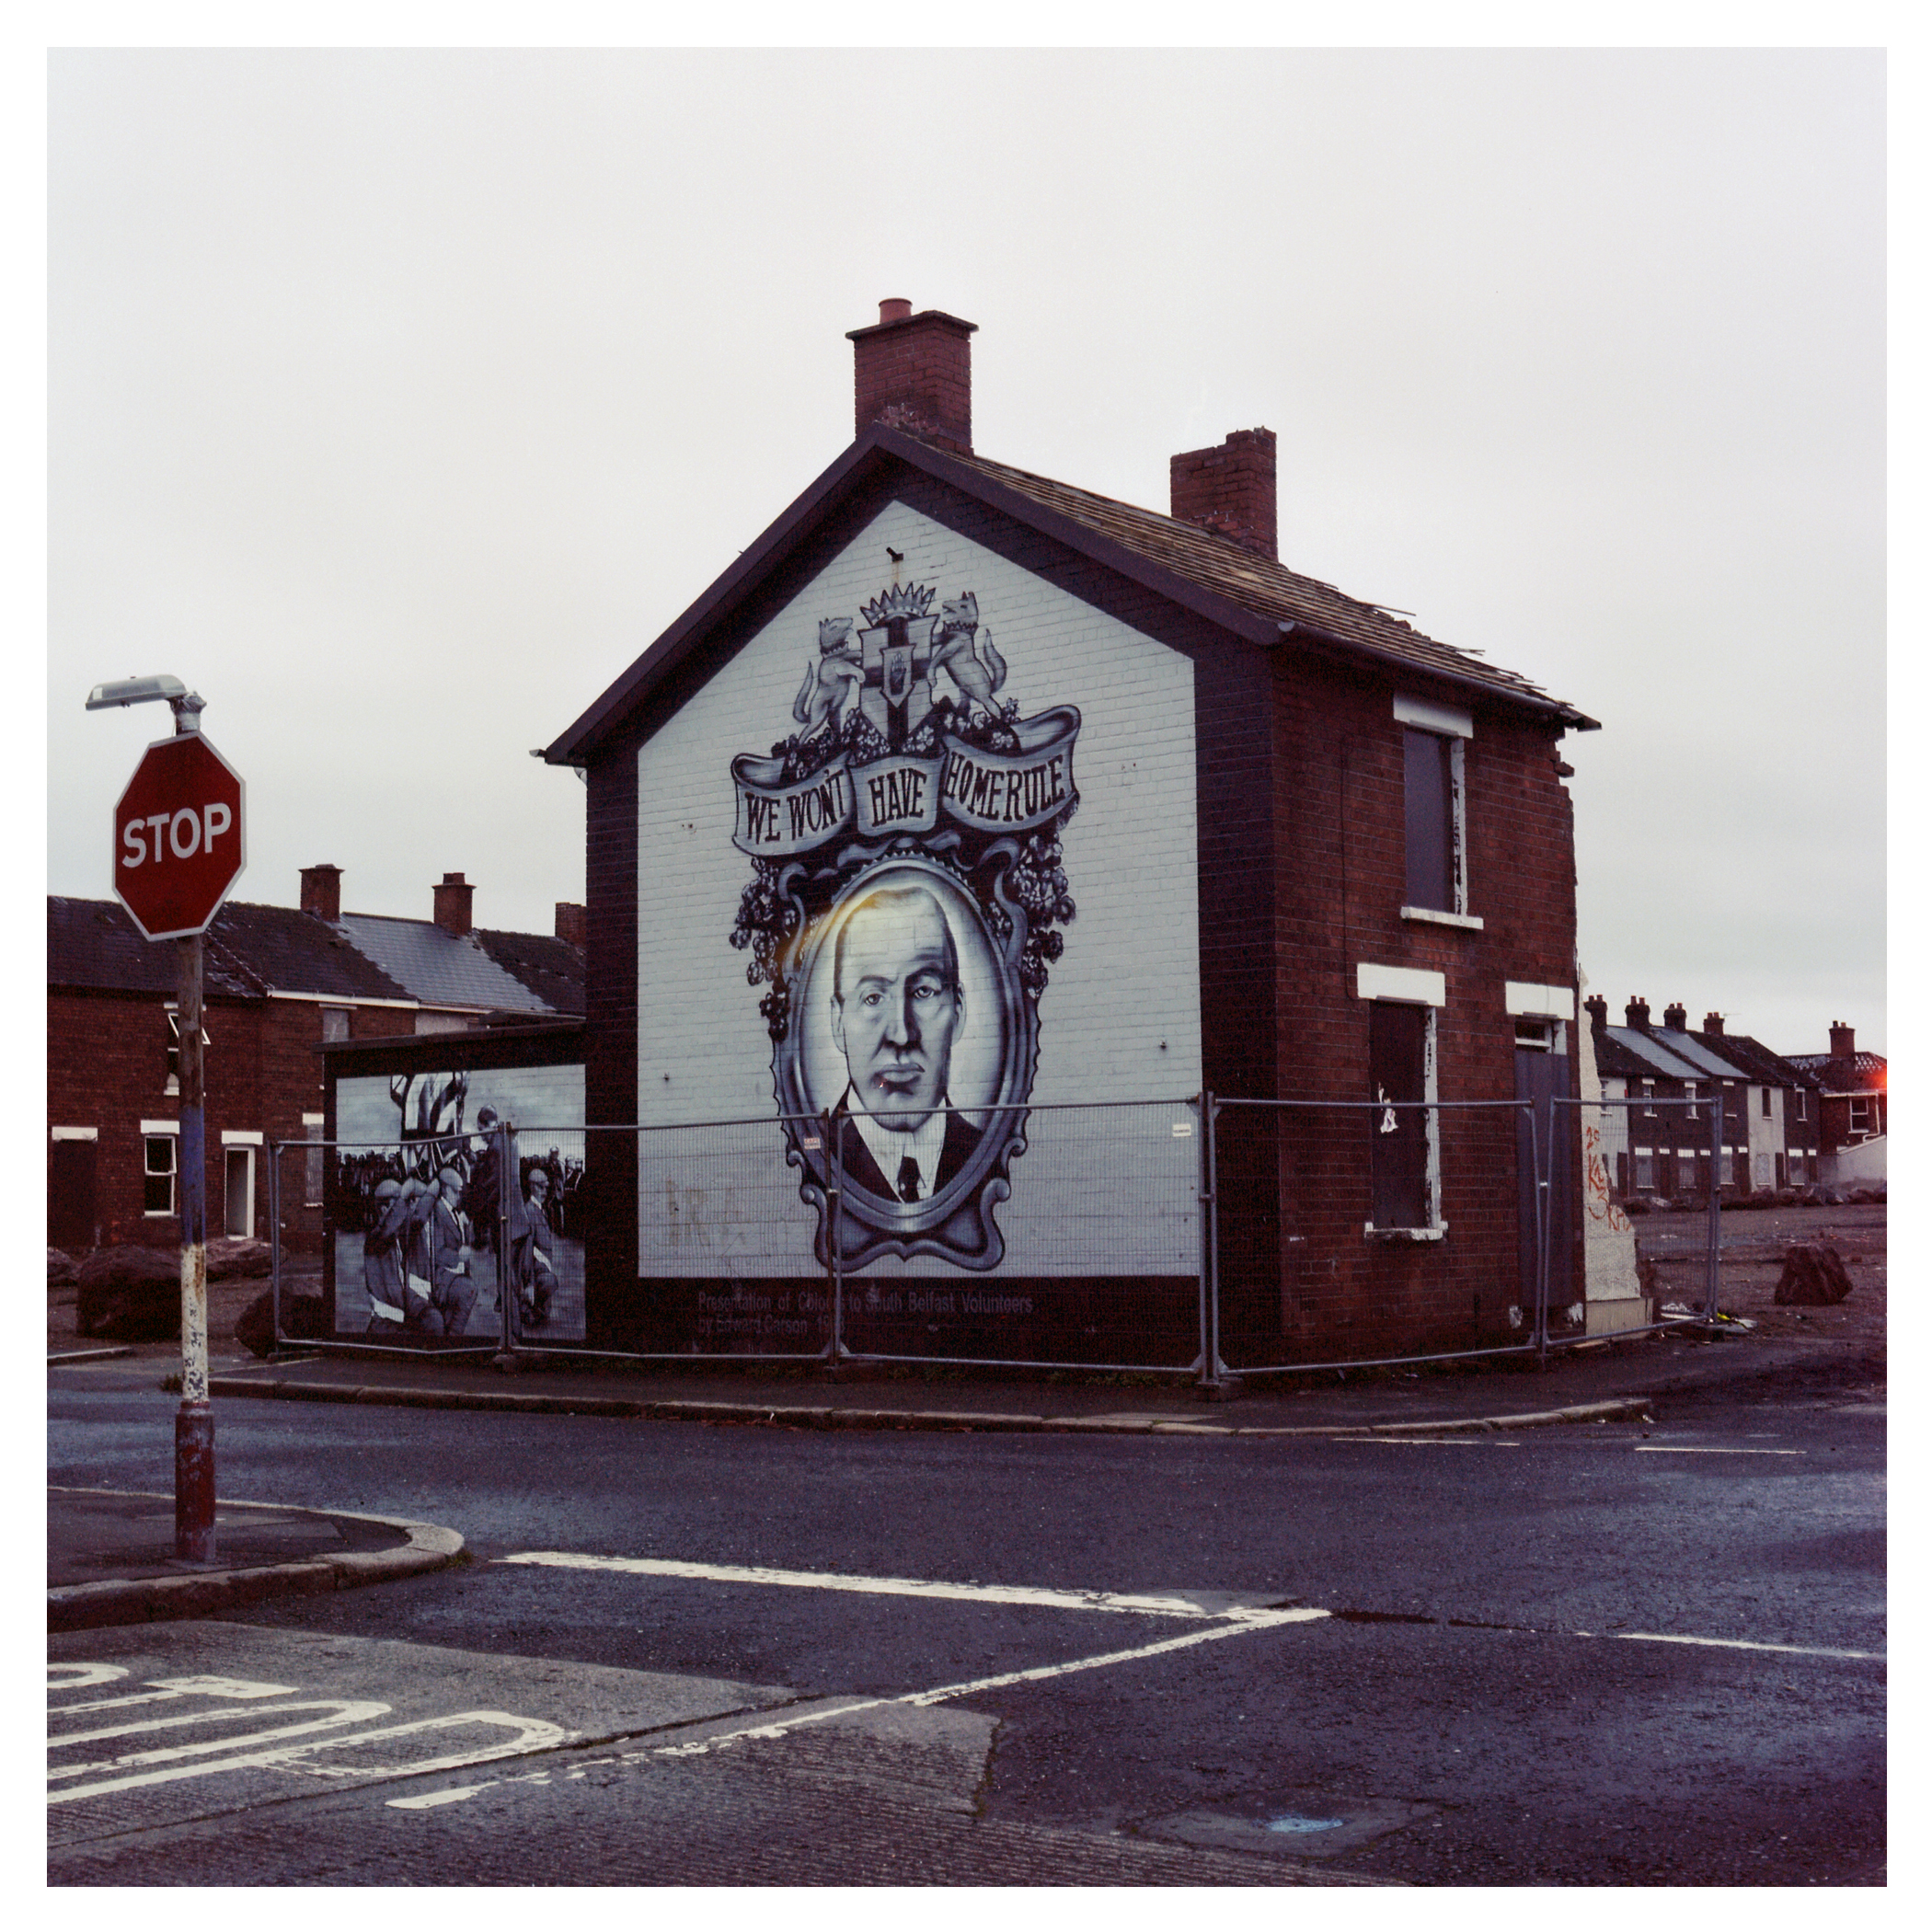 An end terrace house with a mural depicting Edward Carson,who was the leading figure in the campaign against the Home Rule Bill & the first signatory of the Ulster Covenant), prior to demolition.